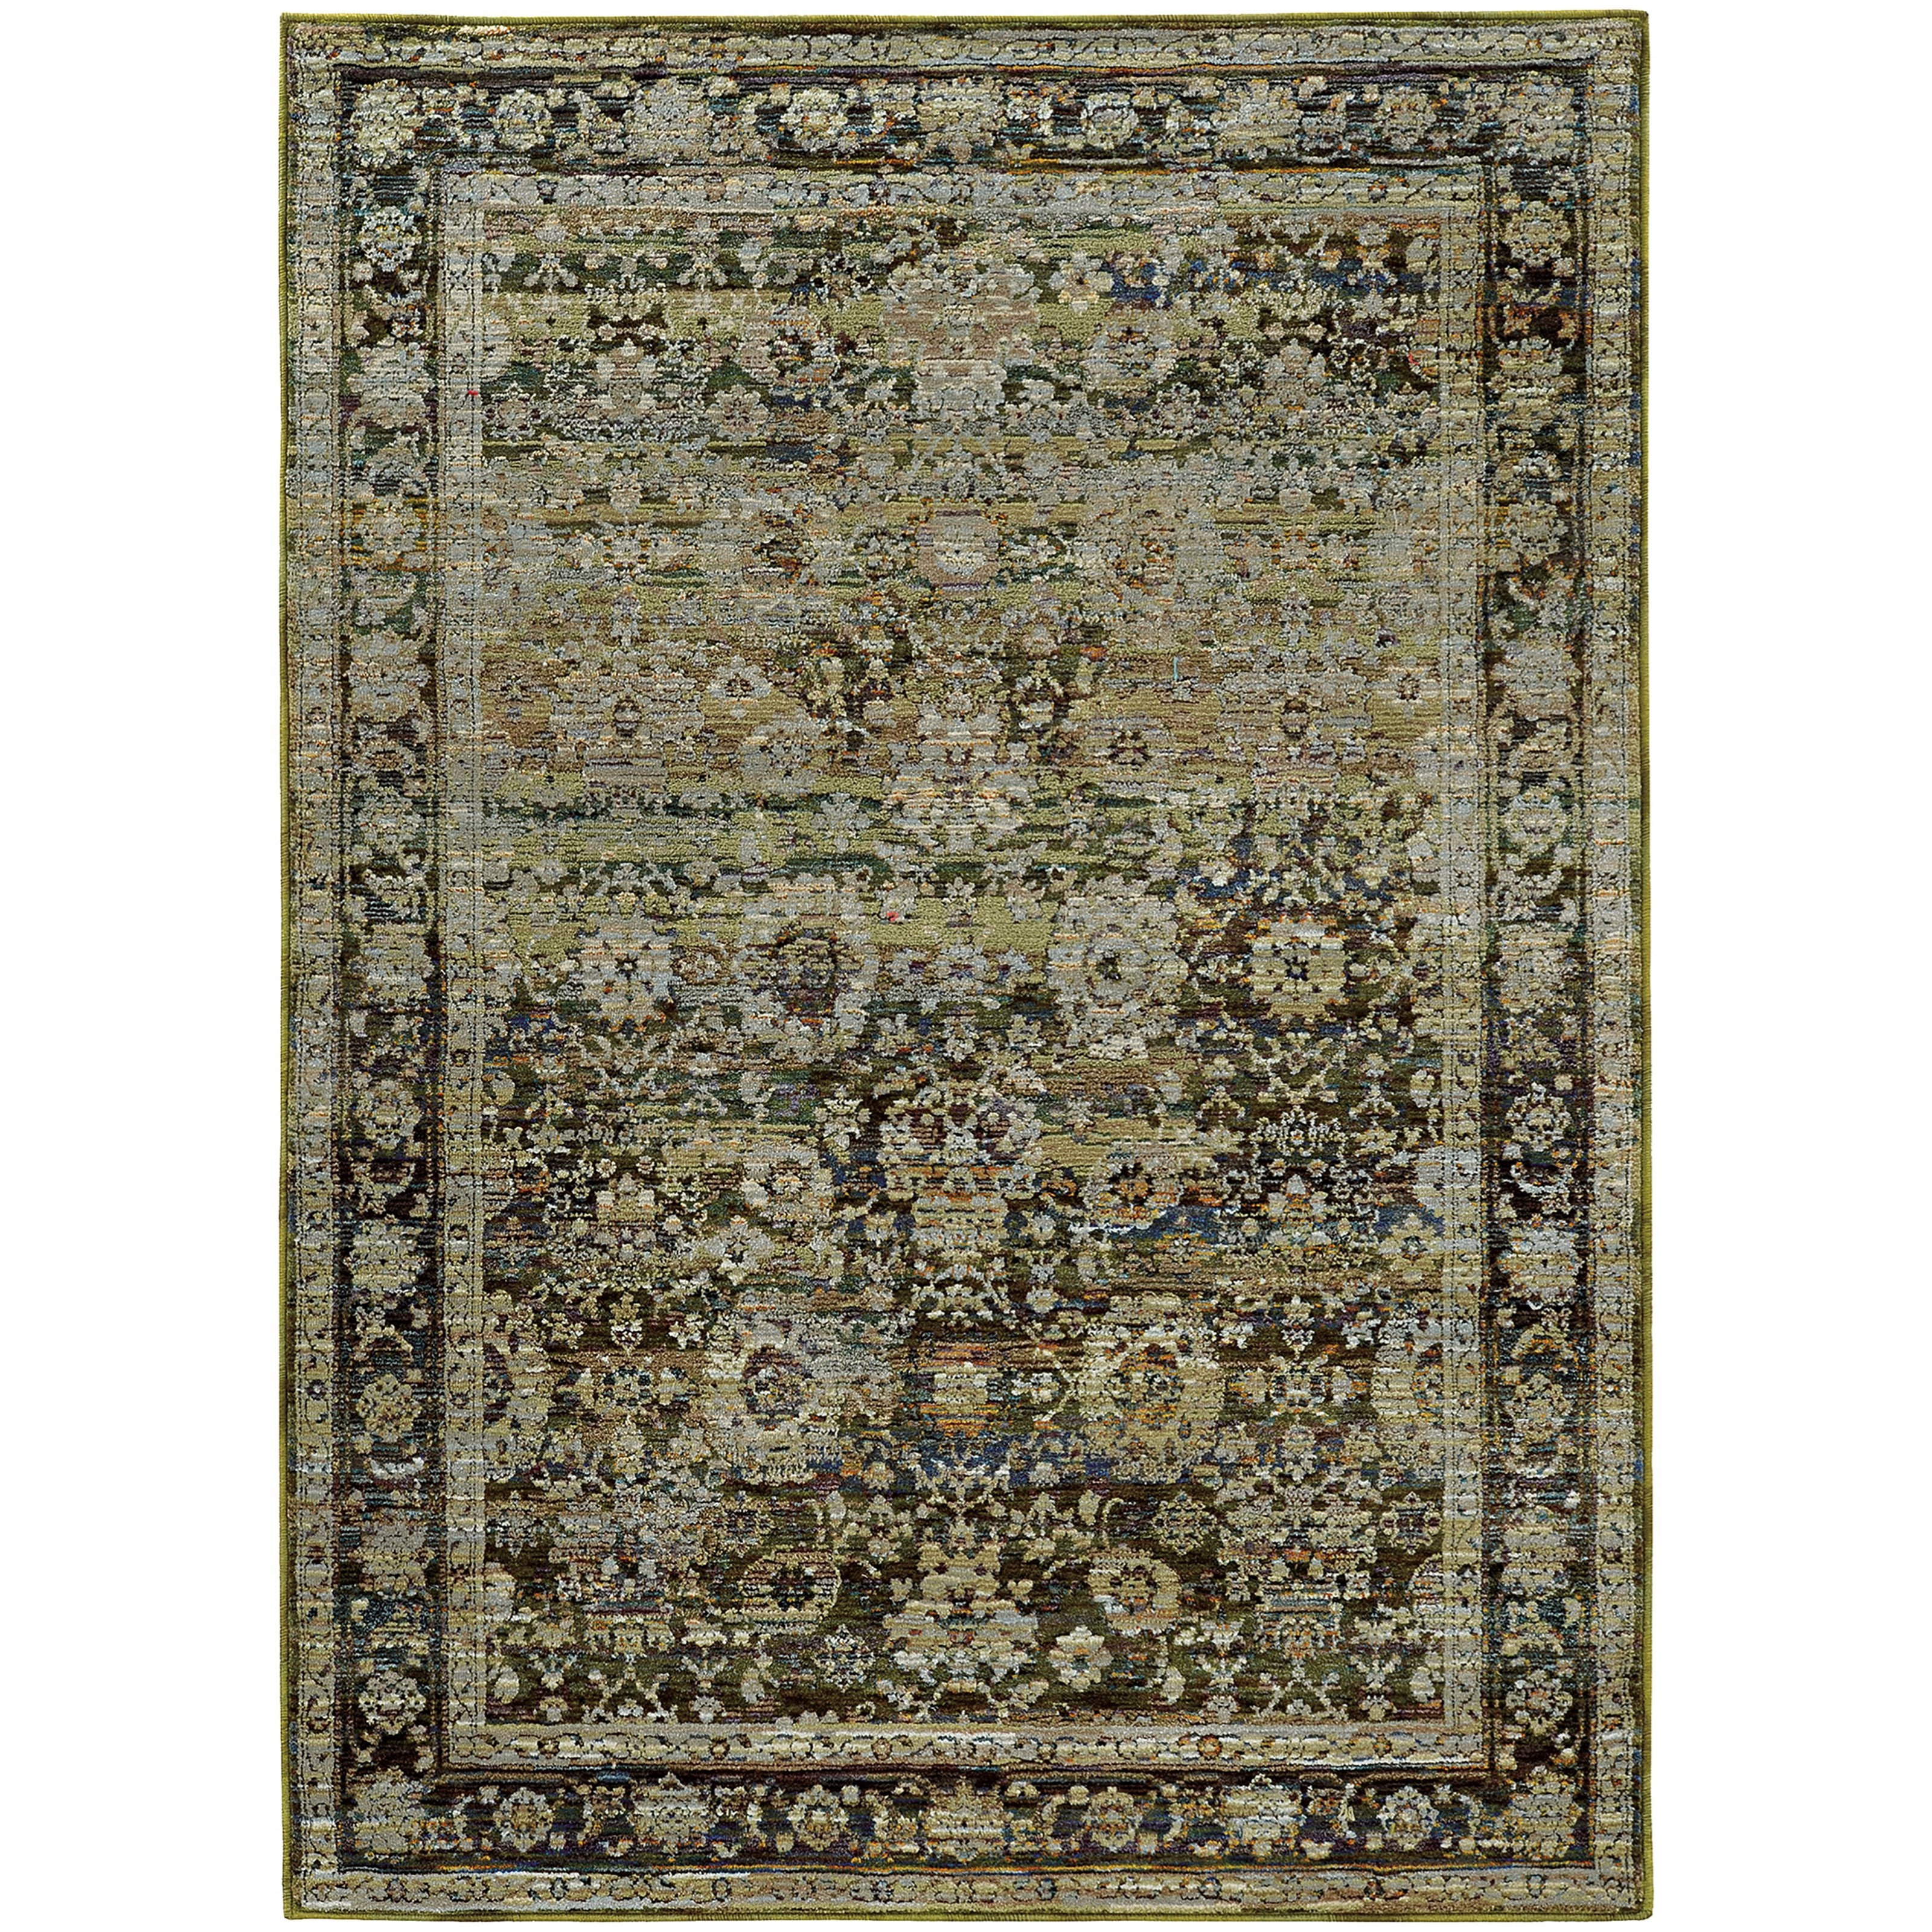 """Andorra 7'10"""" X 10'10"""" Casual Green/ Brown Rectangle by Oriental Weavers at Rooms for Less"""